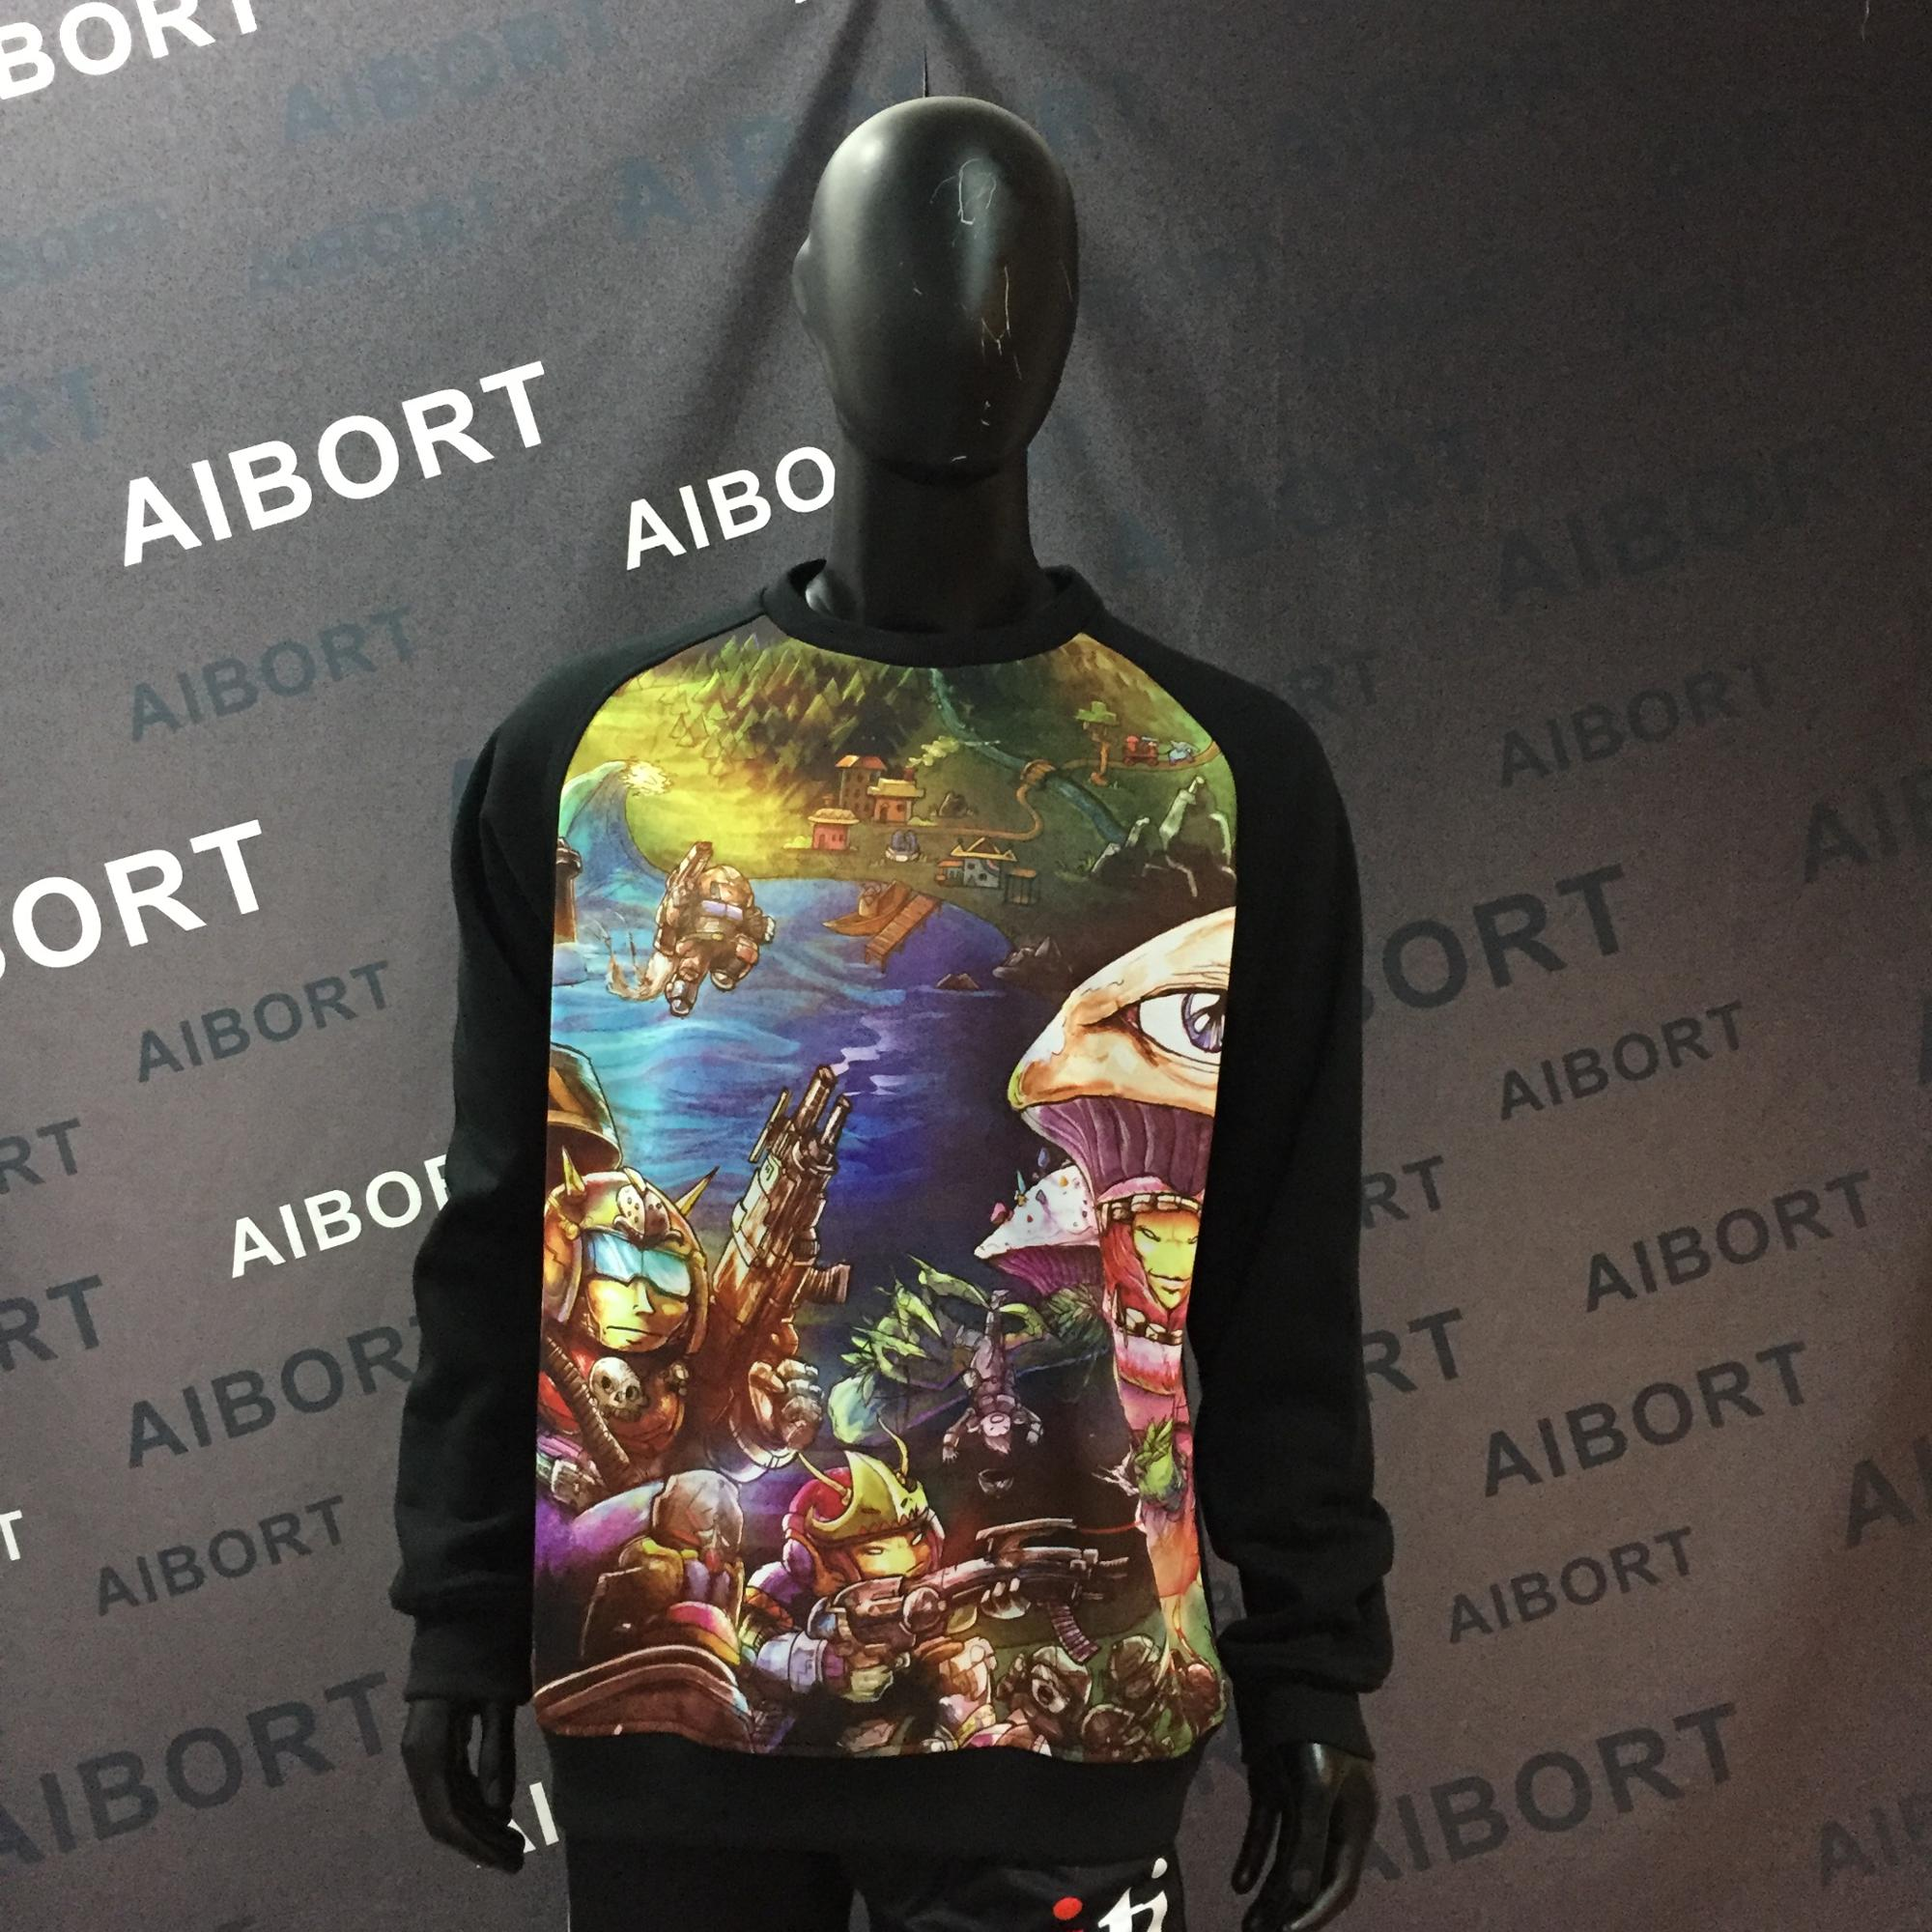 Hot sales cutomized street wear sublimation tee shirts